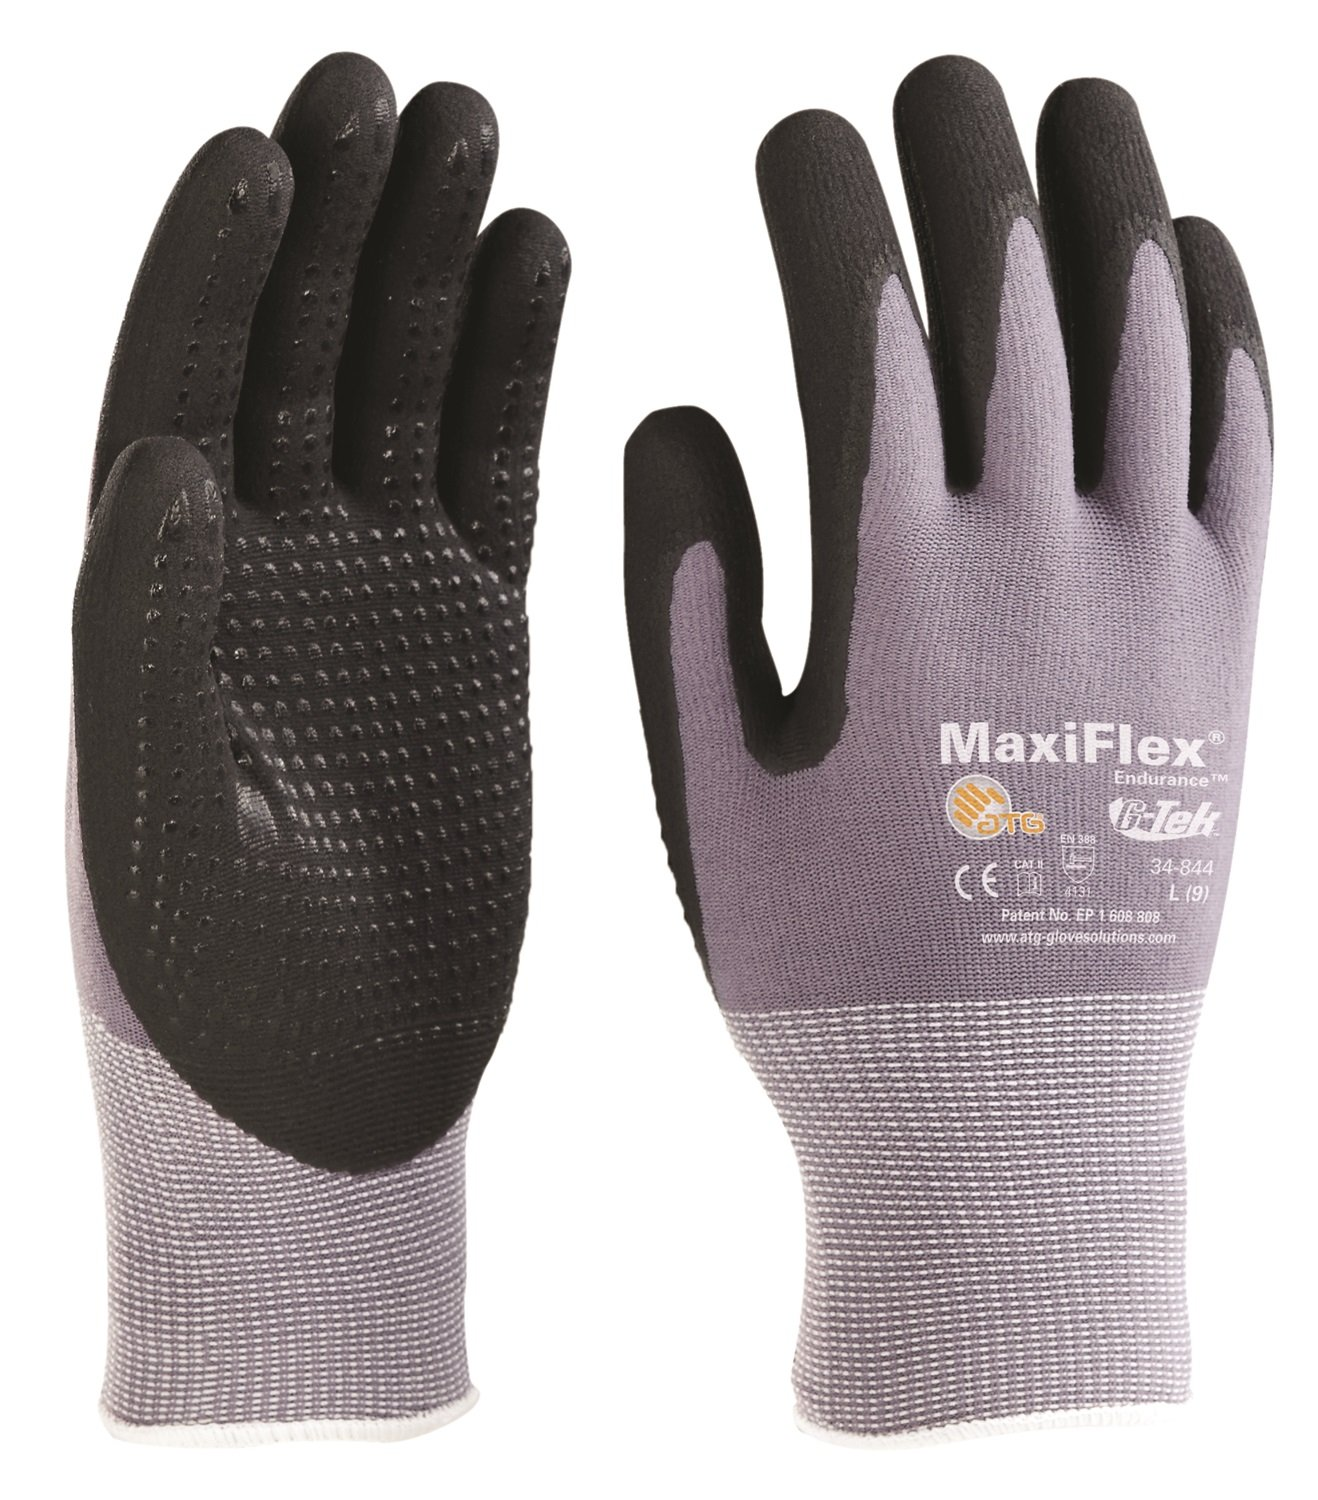 P.I.P 34-874-L G-TEK MAXIFLEX NITRILE COATED GLOVES SIZE LARGE 12 PAIRS NEW PIP